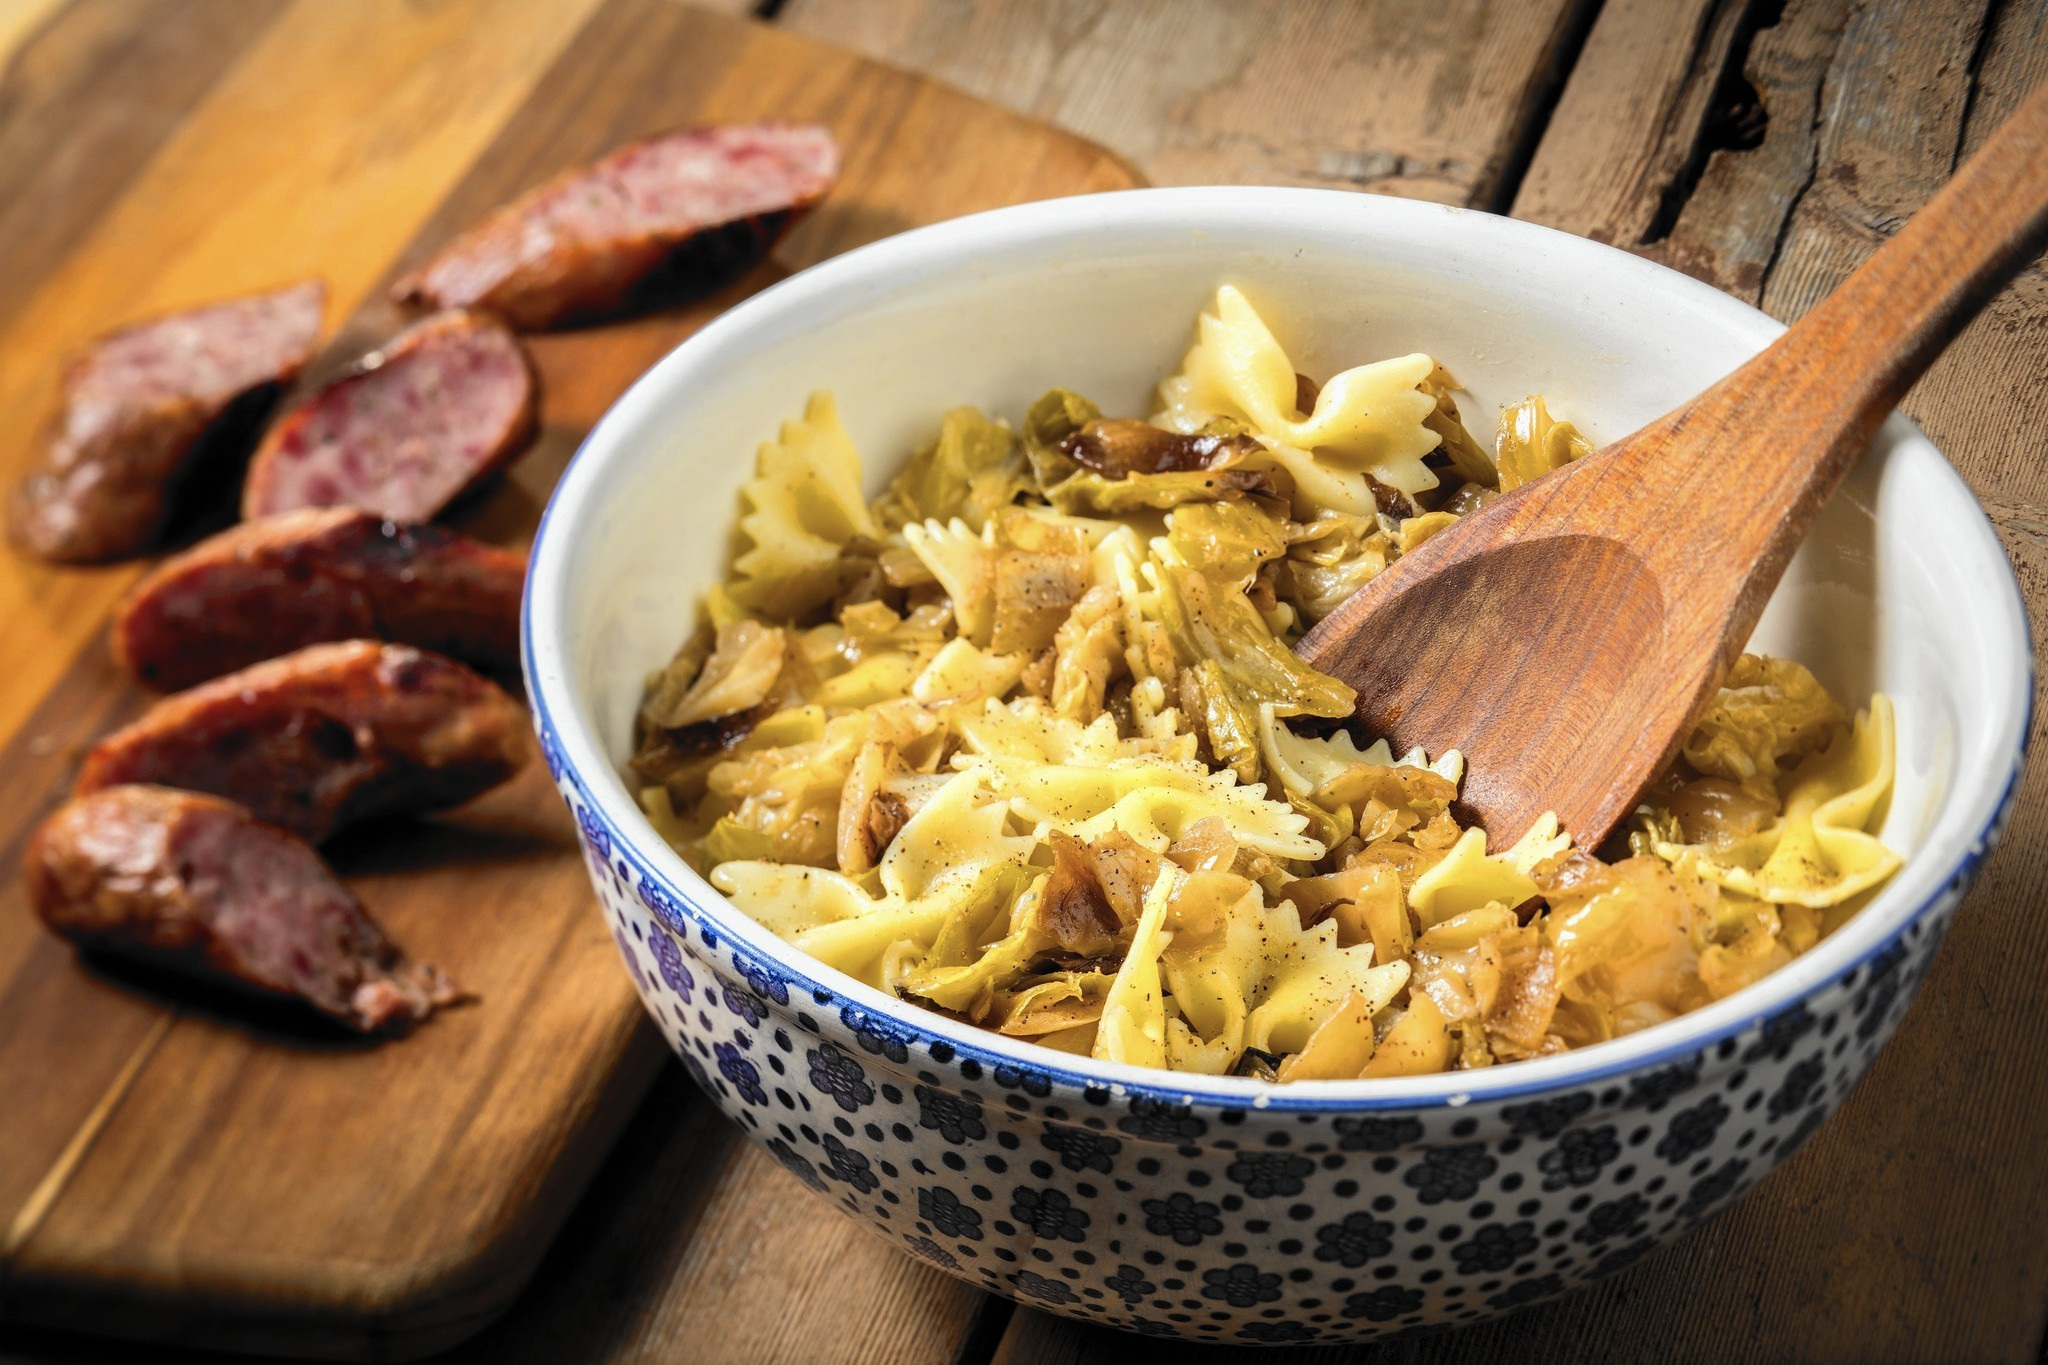 Cabbage cooked up sweet and tender turns into kapusta